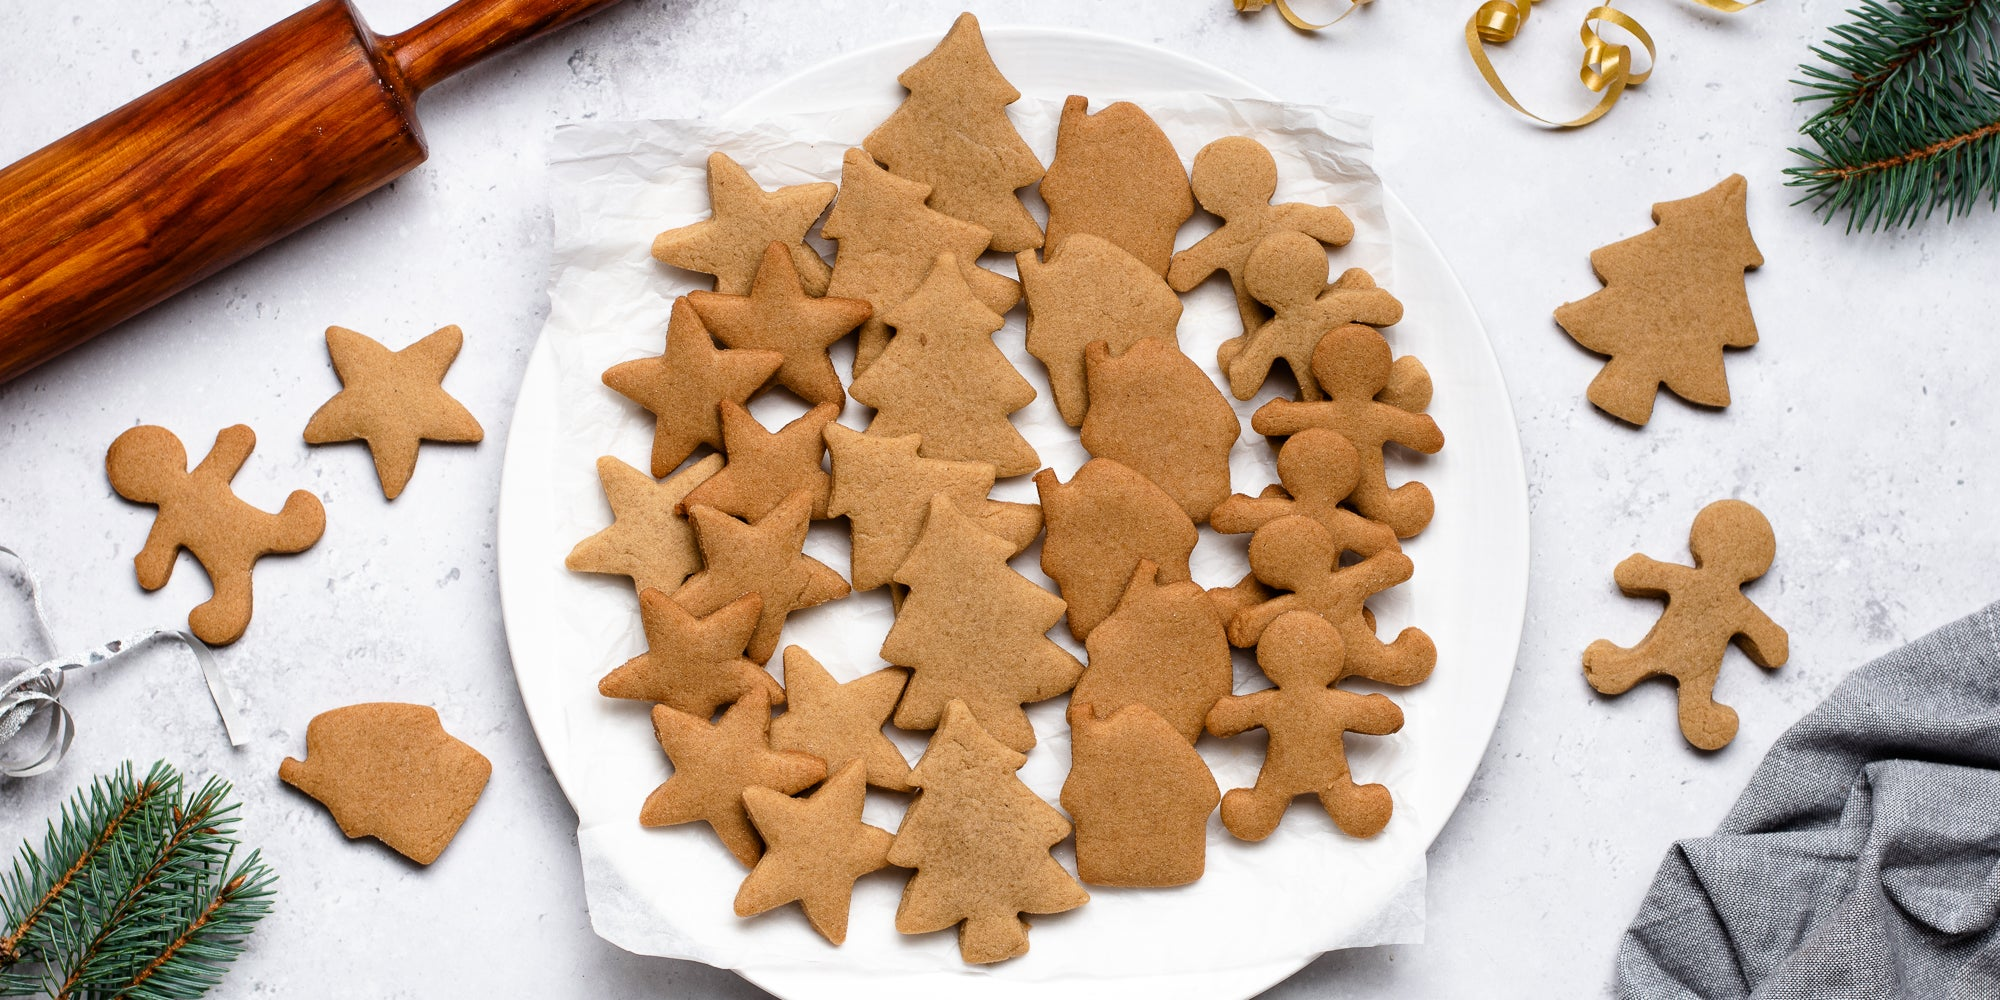 A batch of gingerbread cookies made from Gingerbread Dough, next to a rolling pin and pine leaves